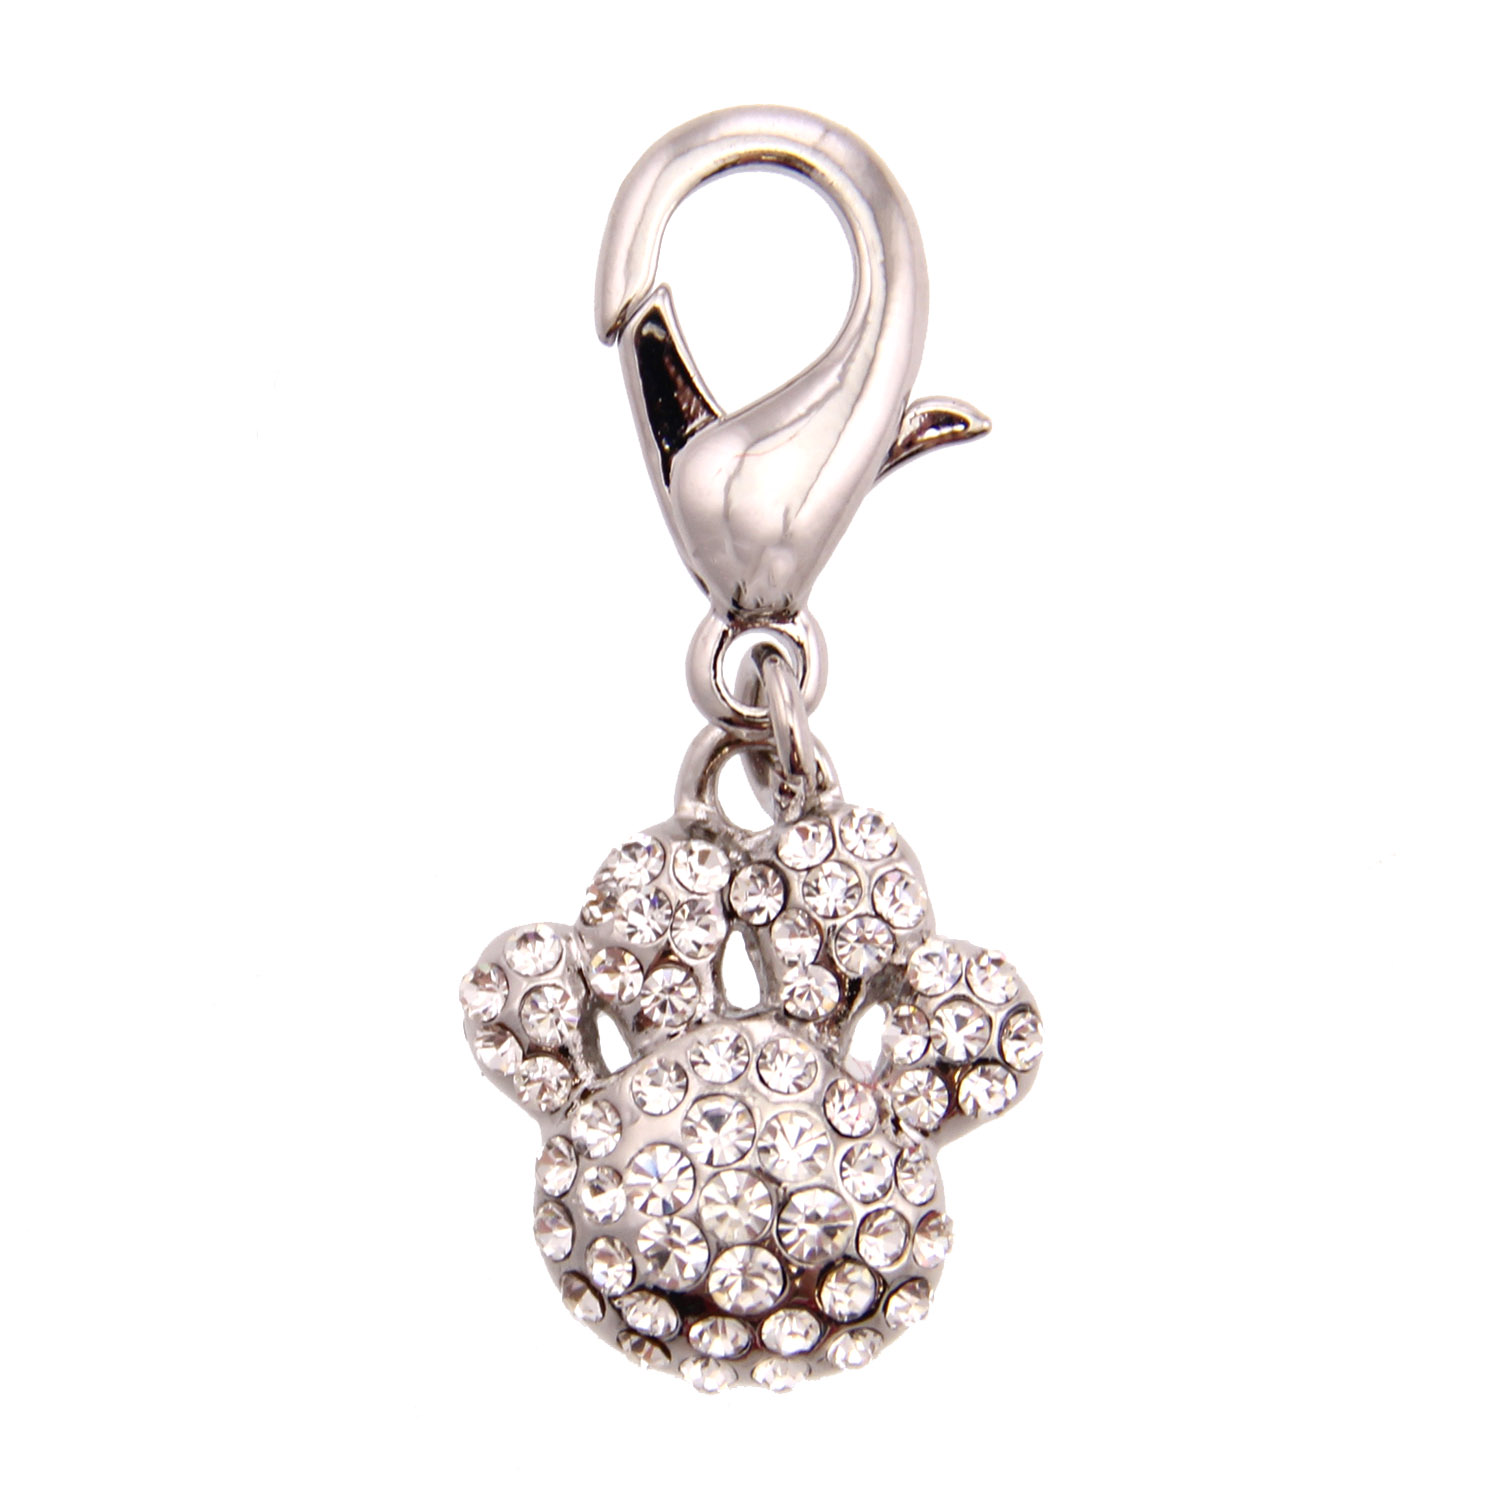 Pave Paw D-Ring Pet Collar Charm by foufou Dog - Clear